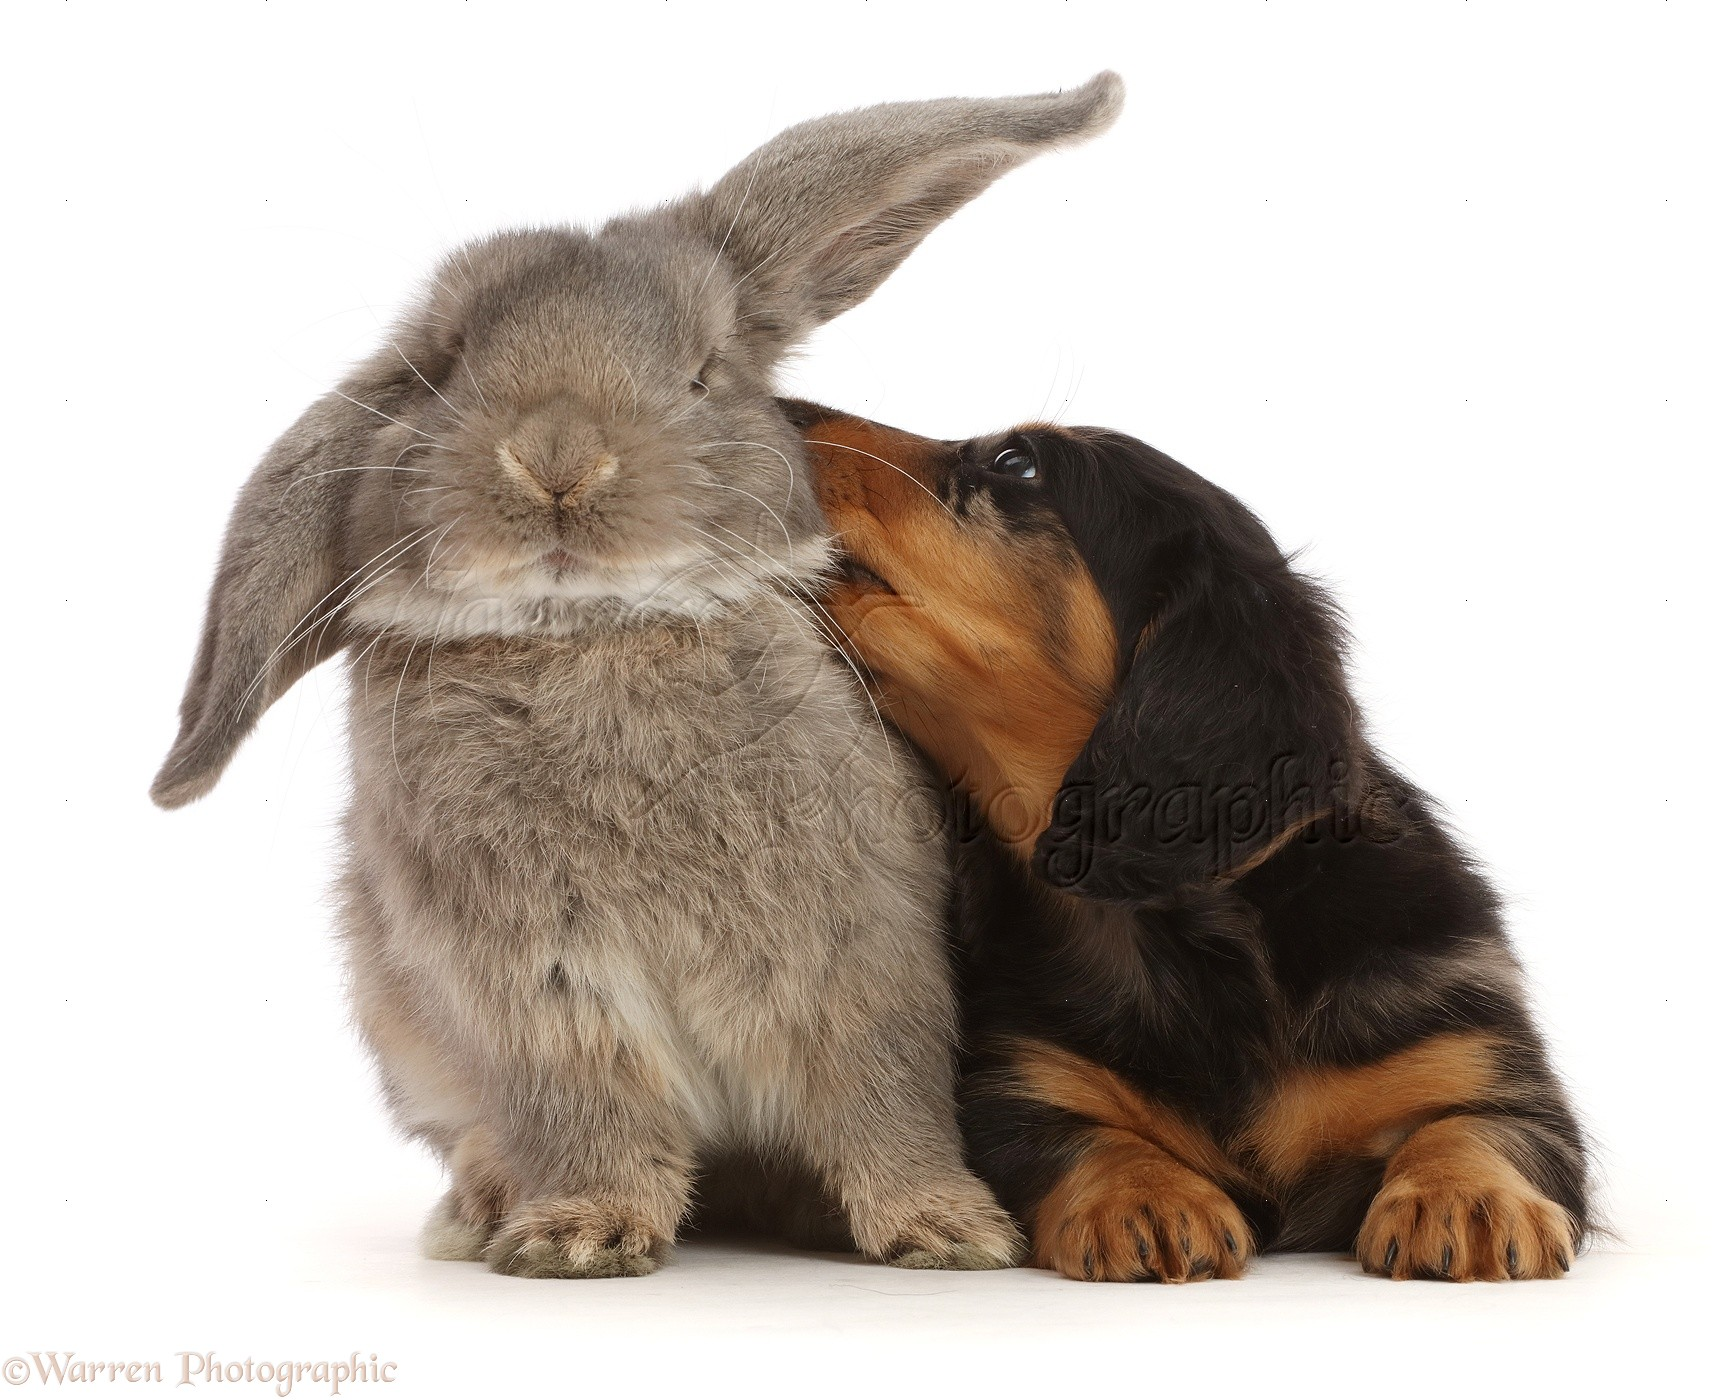 Pets Dachshund Puppy Looking Up At Grey Lop Bunny Photo Wp48134